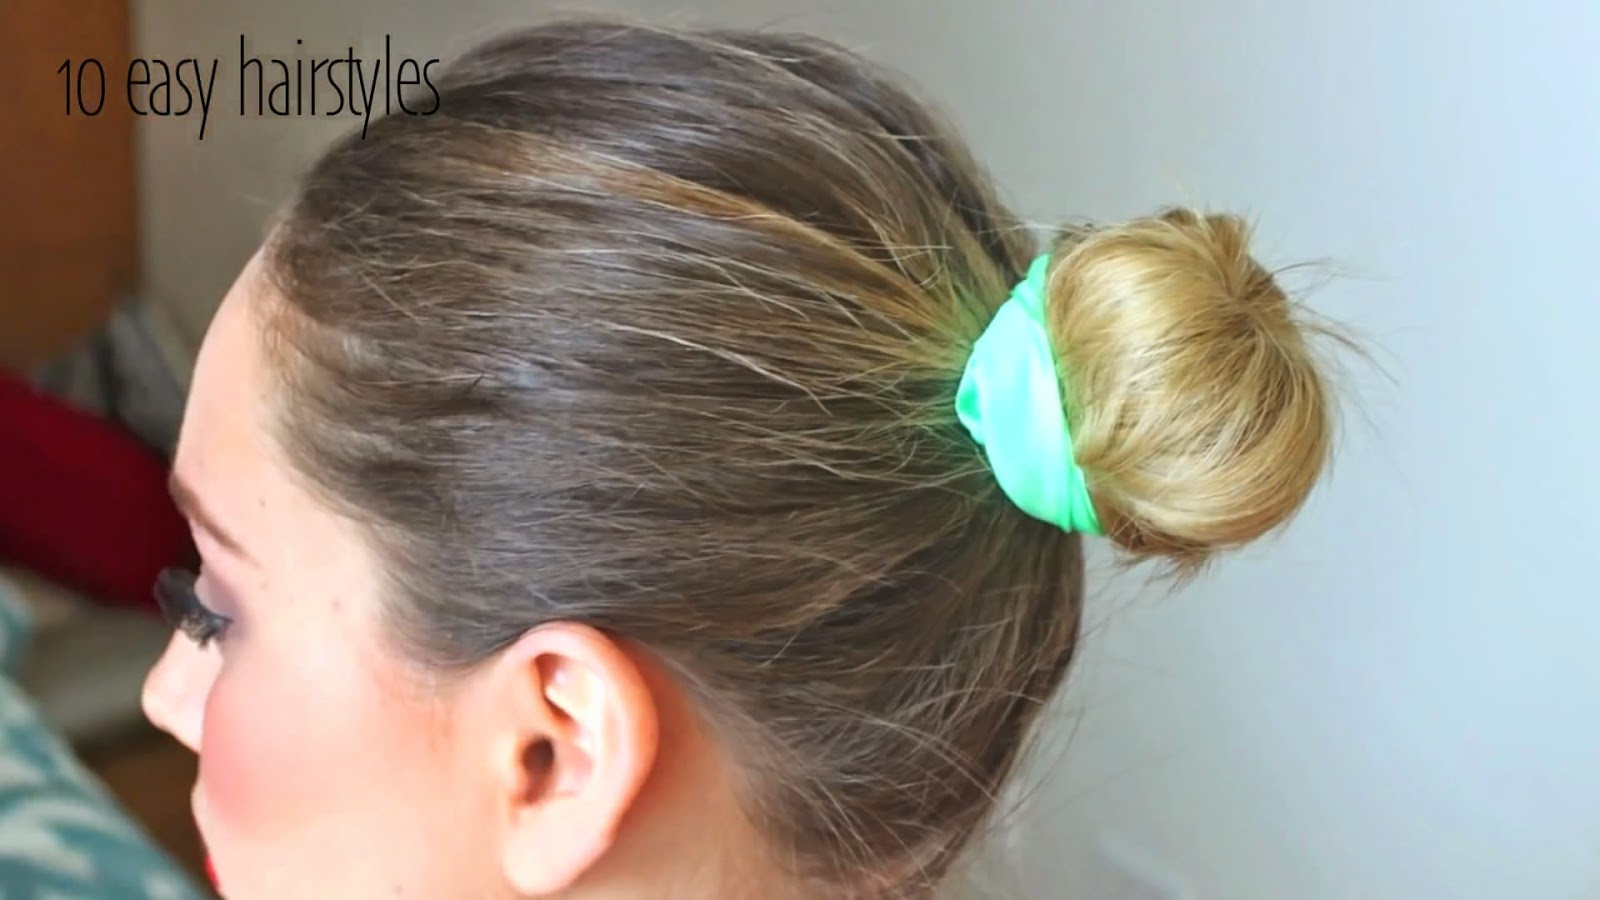 Magnificent Stylevia Top 10 Easy Hairstyles Can Set In 5 Minutes Short Hairstyles Gunalazisus